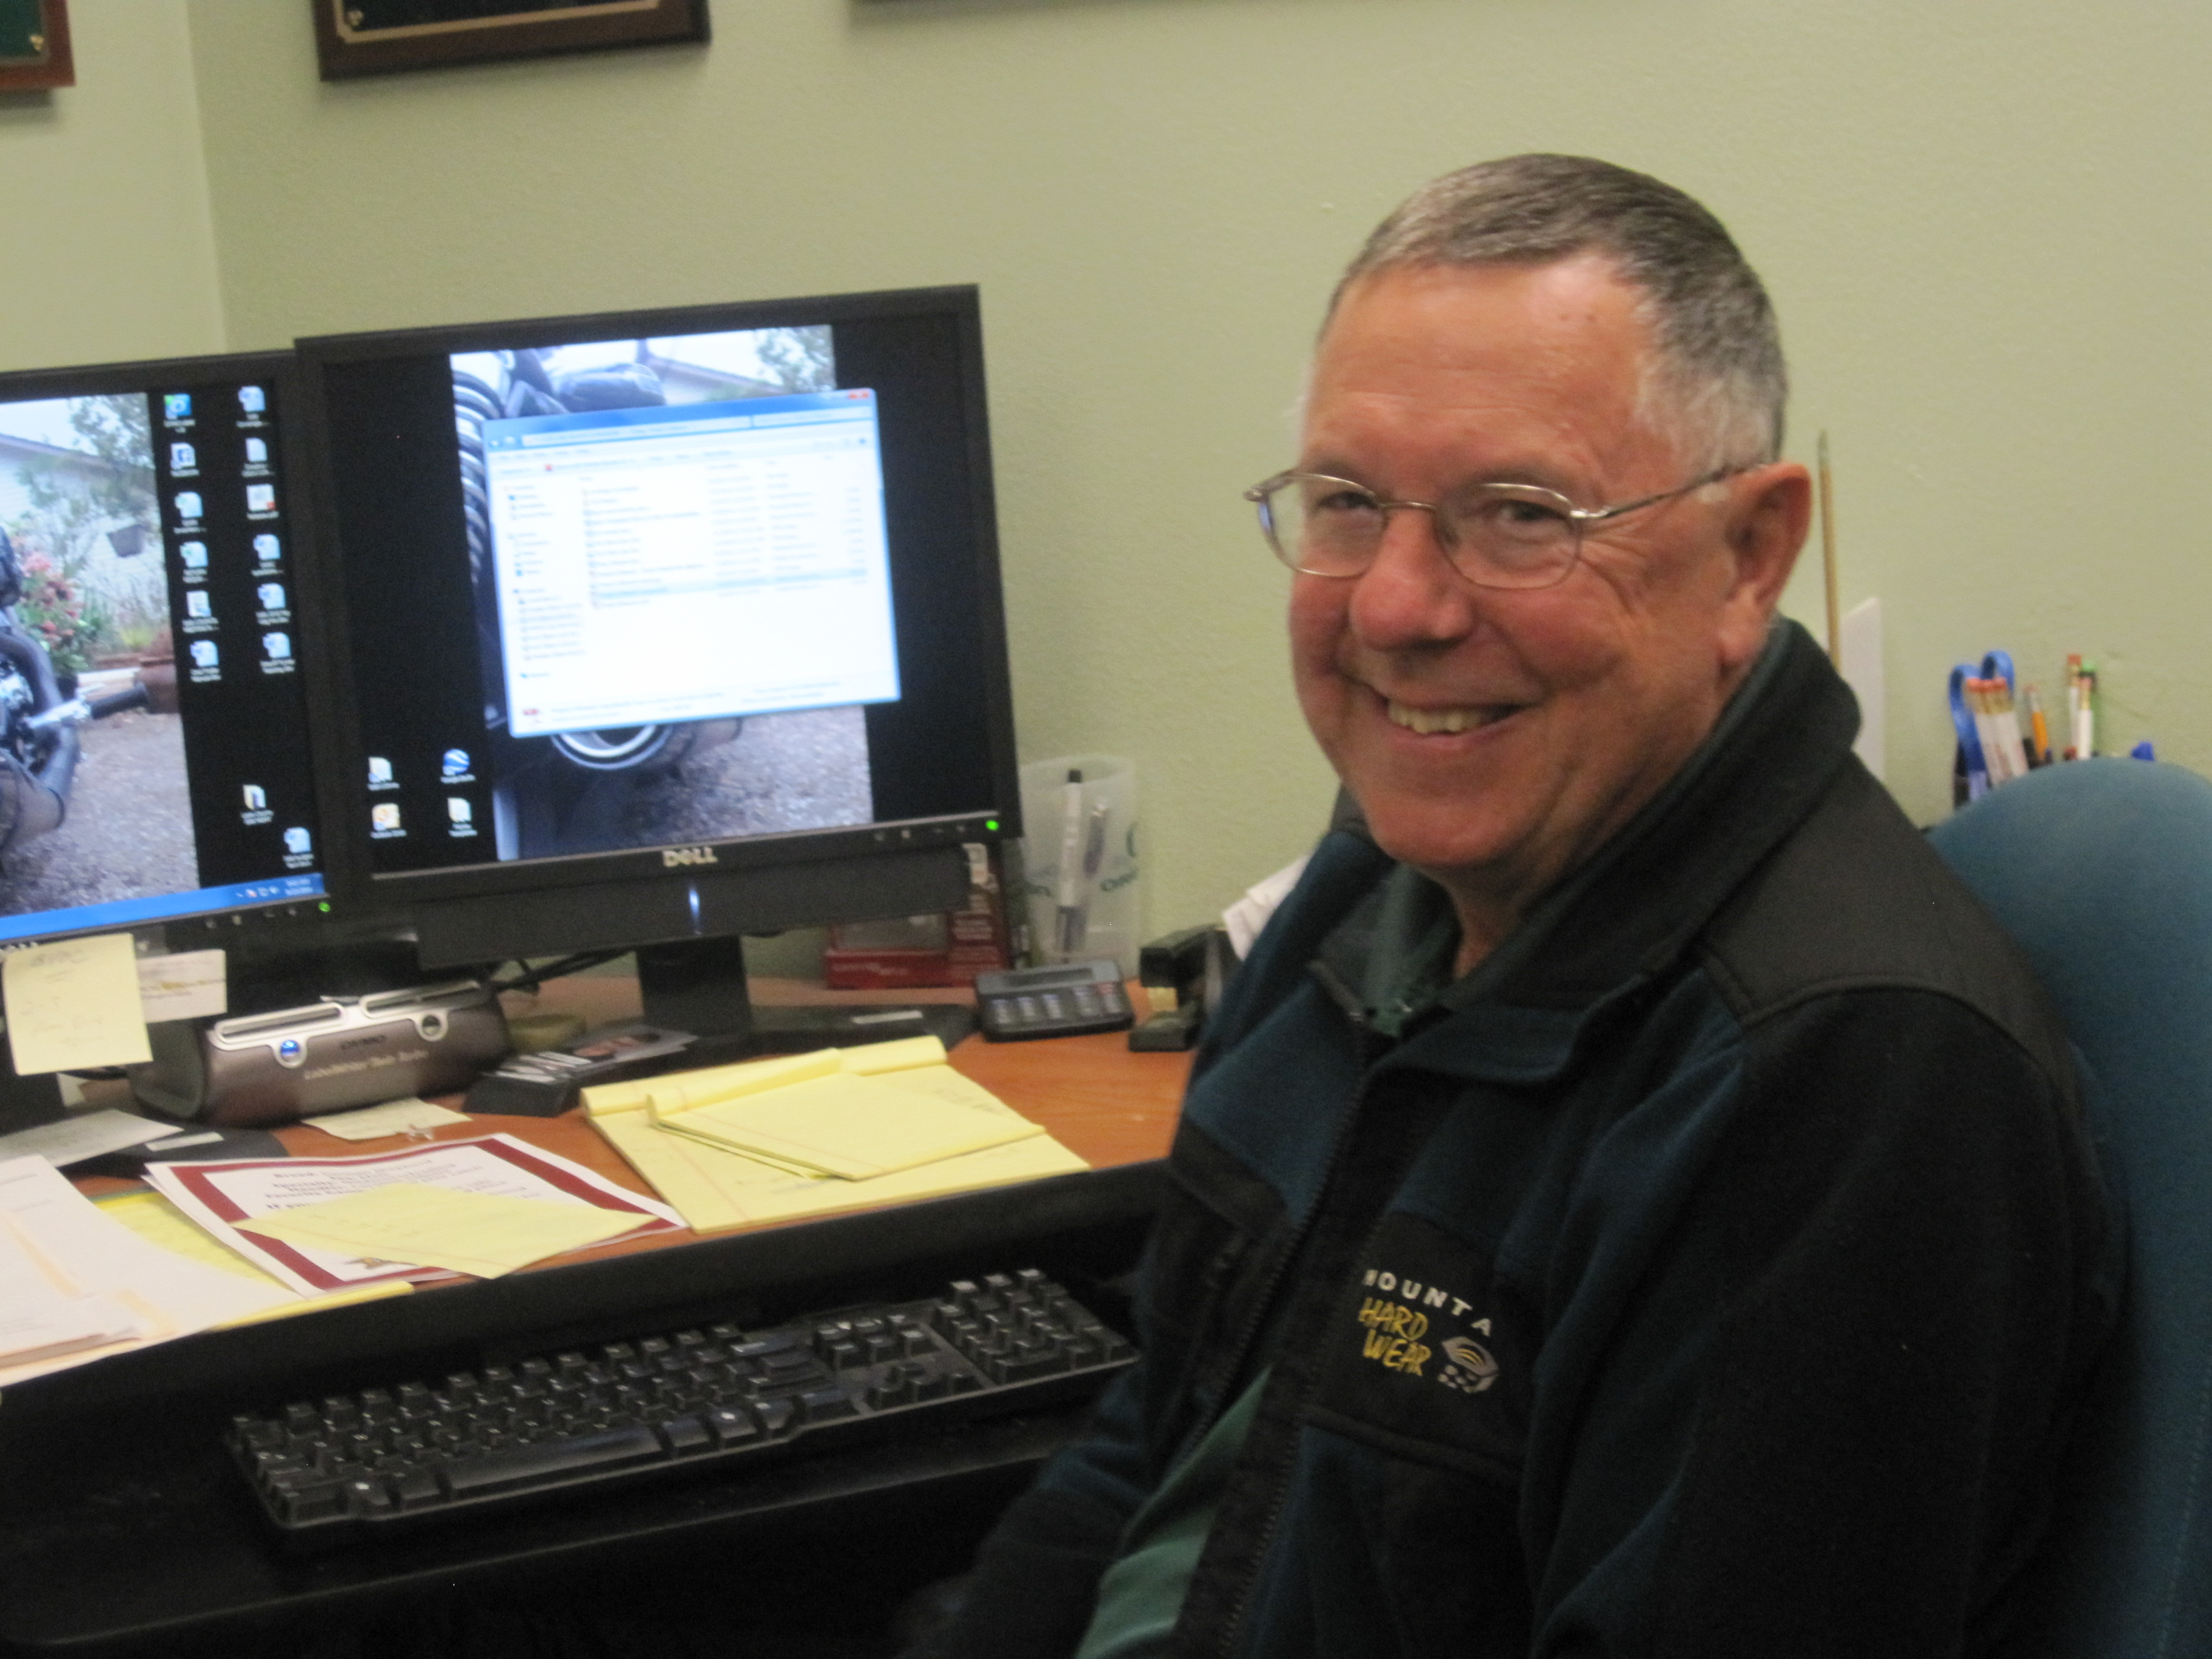 John Miller, the Search and Rescue Coordinator with the Lane County Sherriff's Office, wants more people to be part of the Project Lifesaver program.